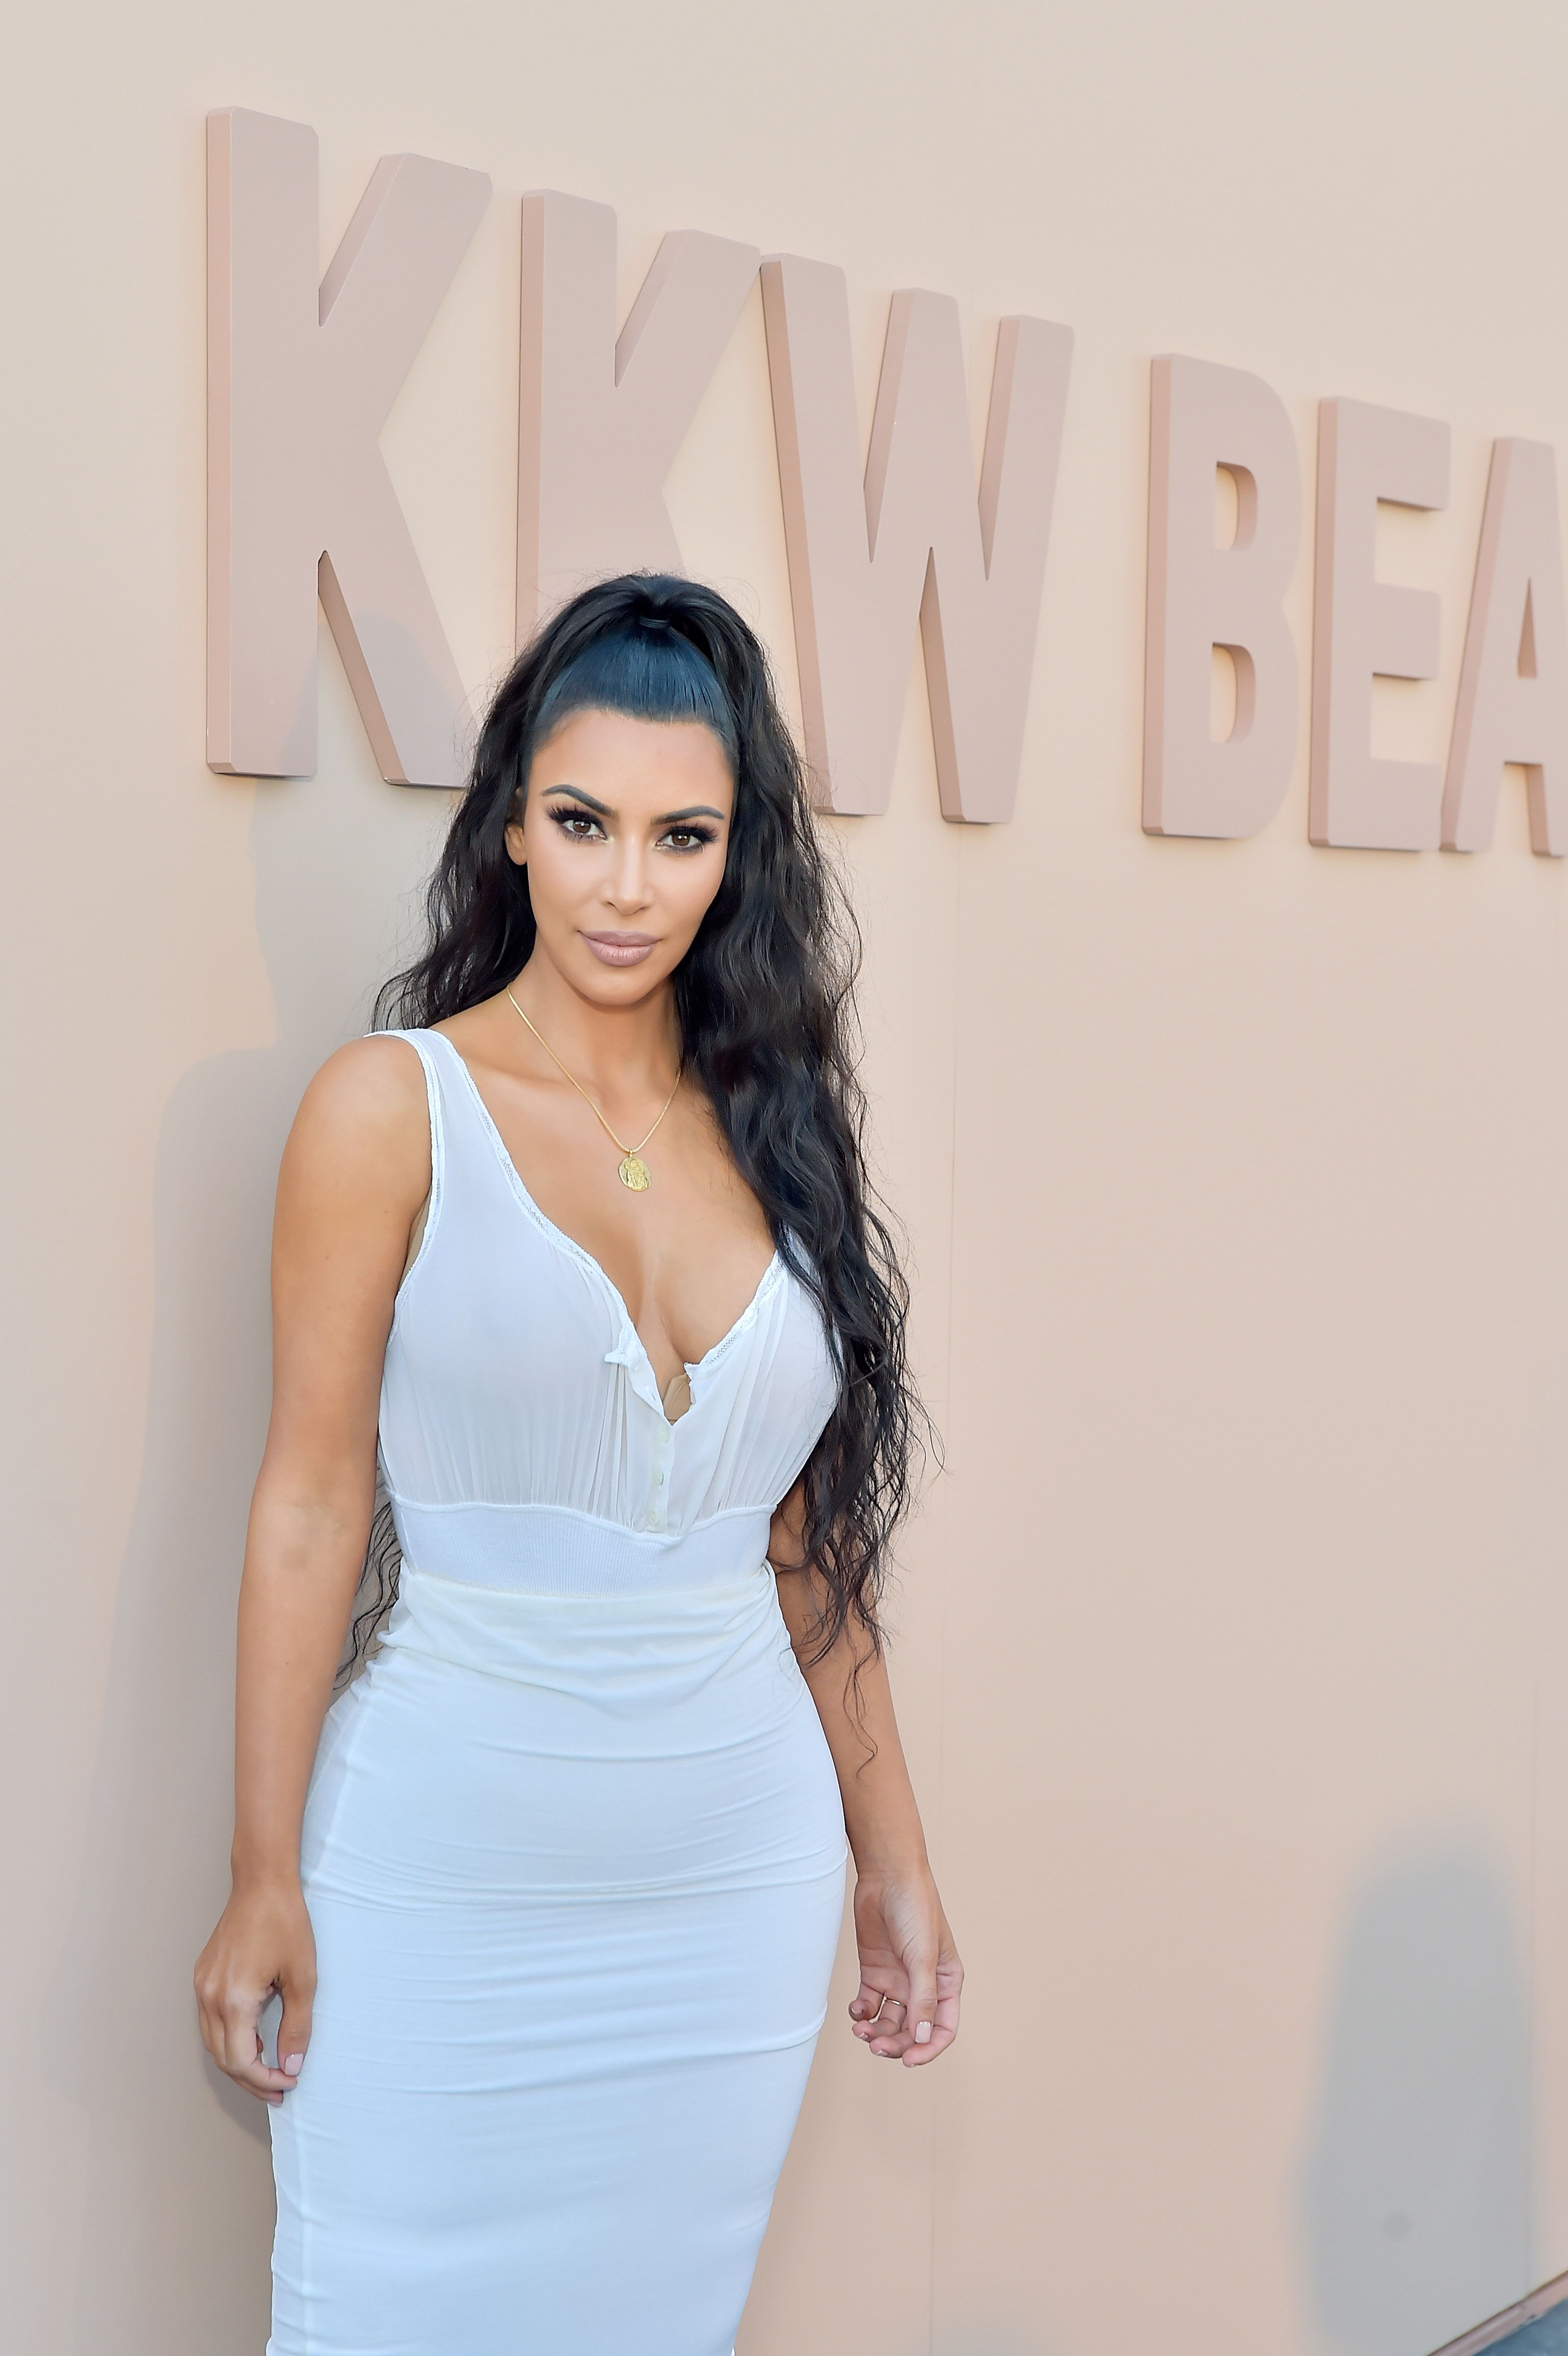 LOS ANGELES, CA - JUNE 30:  Kim Kardashian West attends KKW Beauty Fan Event at KKW Beauty on June 30, 2018 in Los Angeles, California.  (Photo by Stefanie Keenan/Getty Images for ABA)